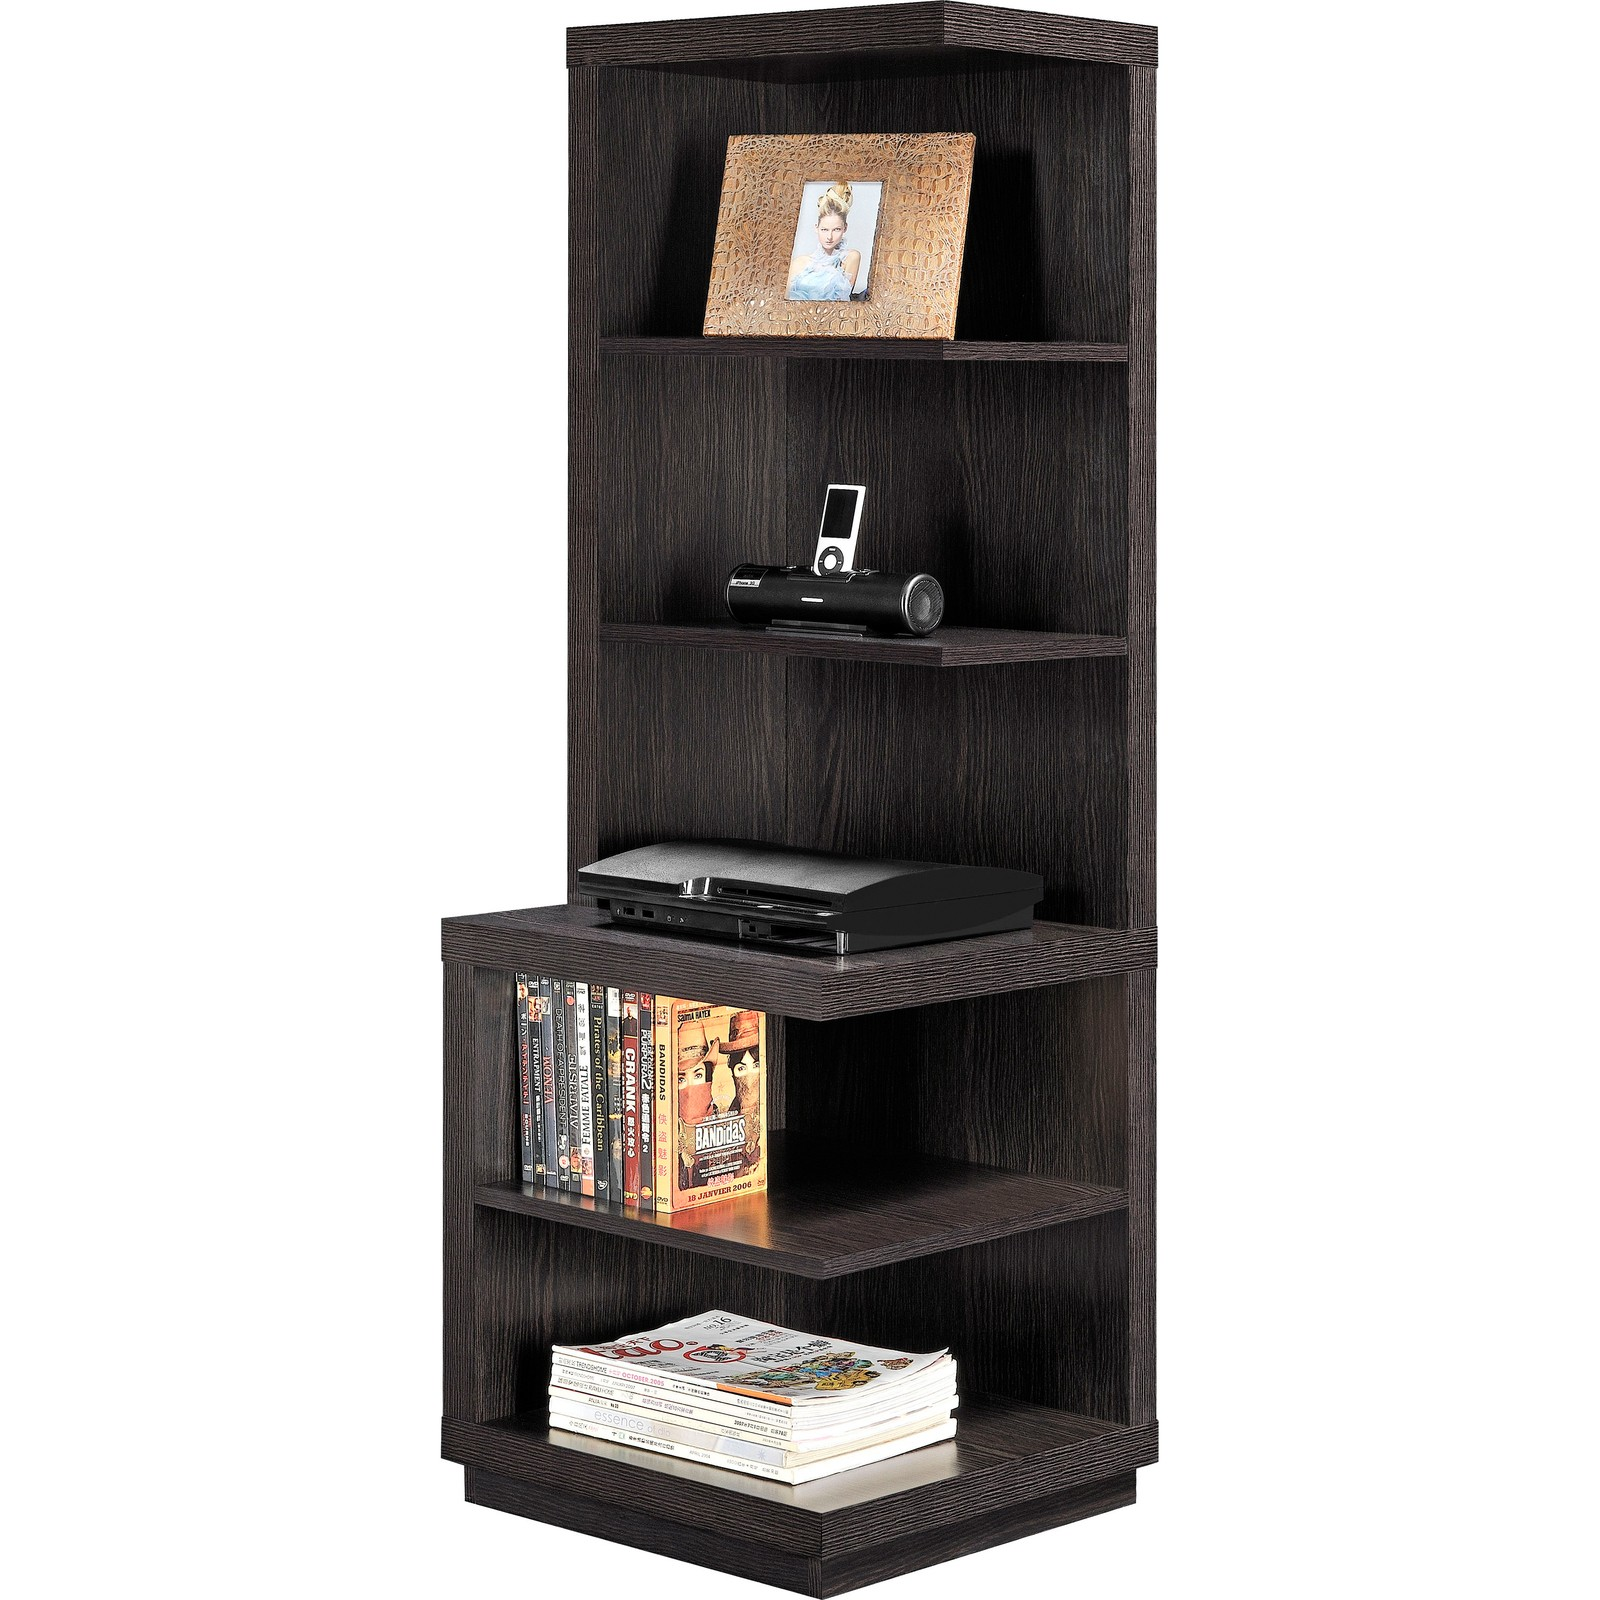 Audio pier stand entertainment center tv furniture rack dvd cd